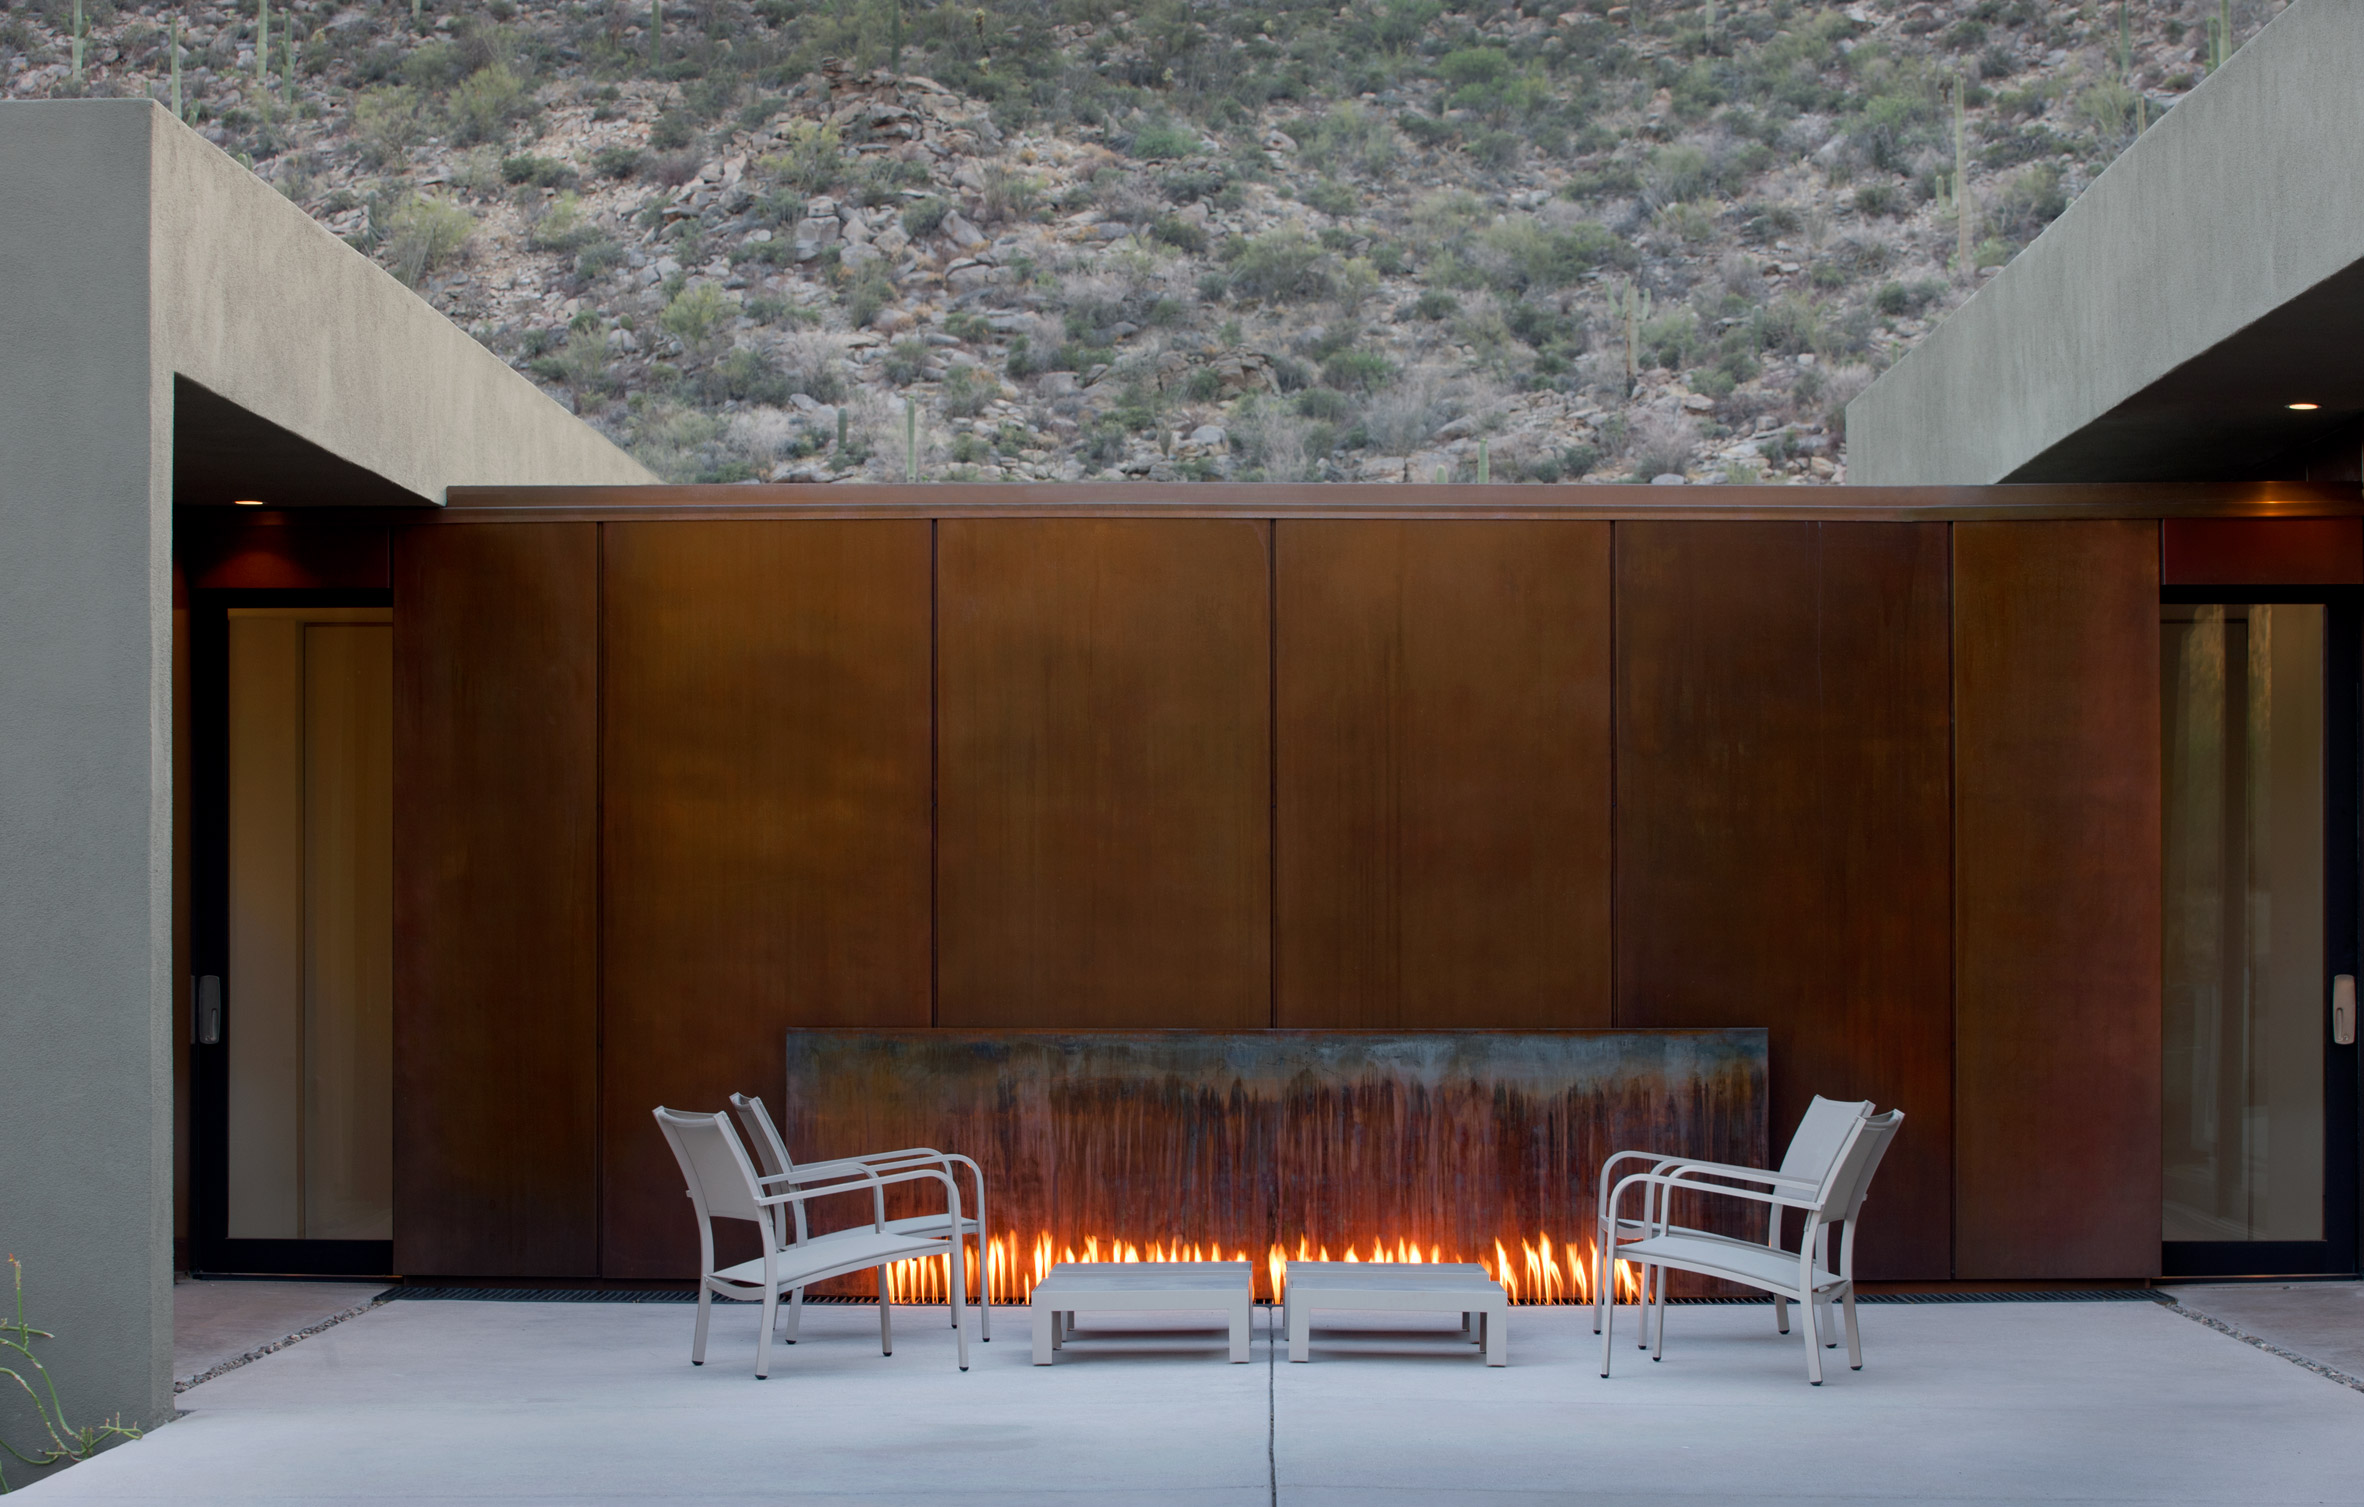 Ibarra Rosano Designs Home Above the Desert in Arizona ibarra rosano Ibarra Rosano Designs Home Above the Desert in Arizona Ibarra Rosano Designs Home Above the Desert in Arizona 3